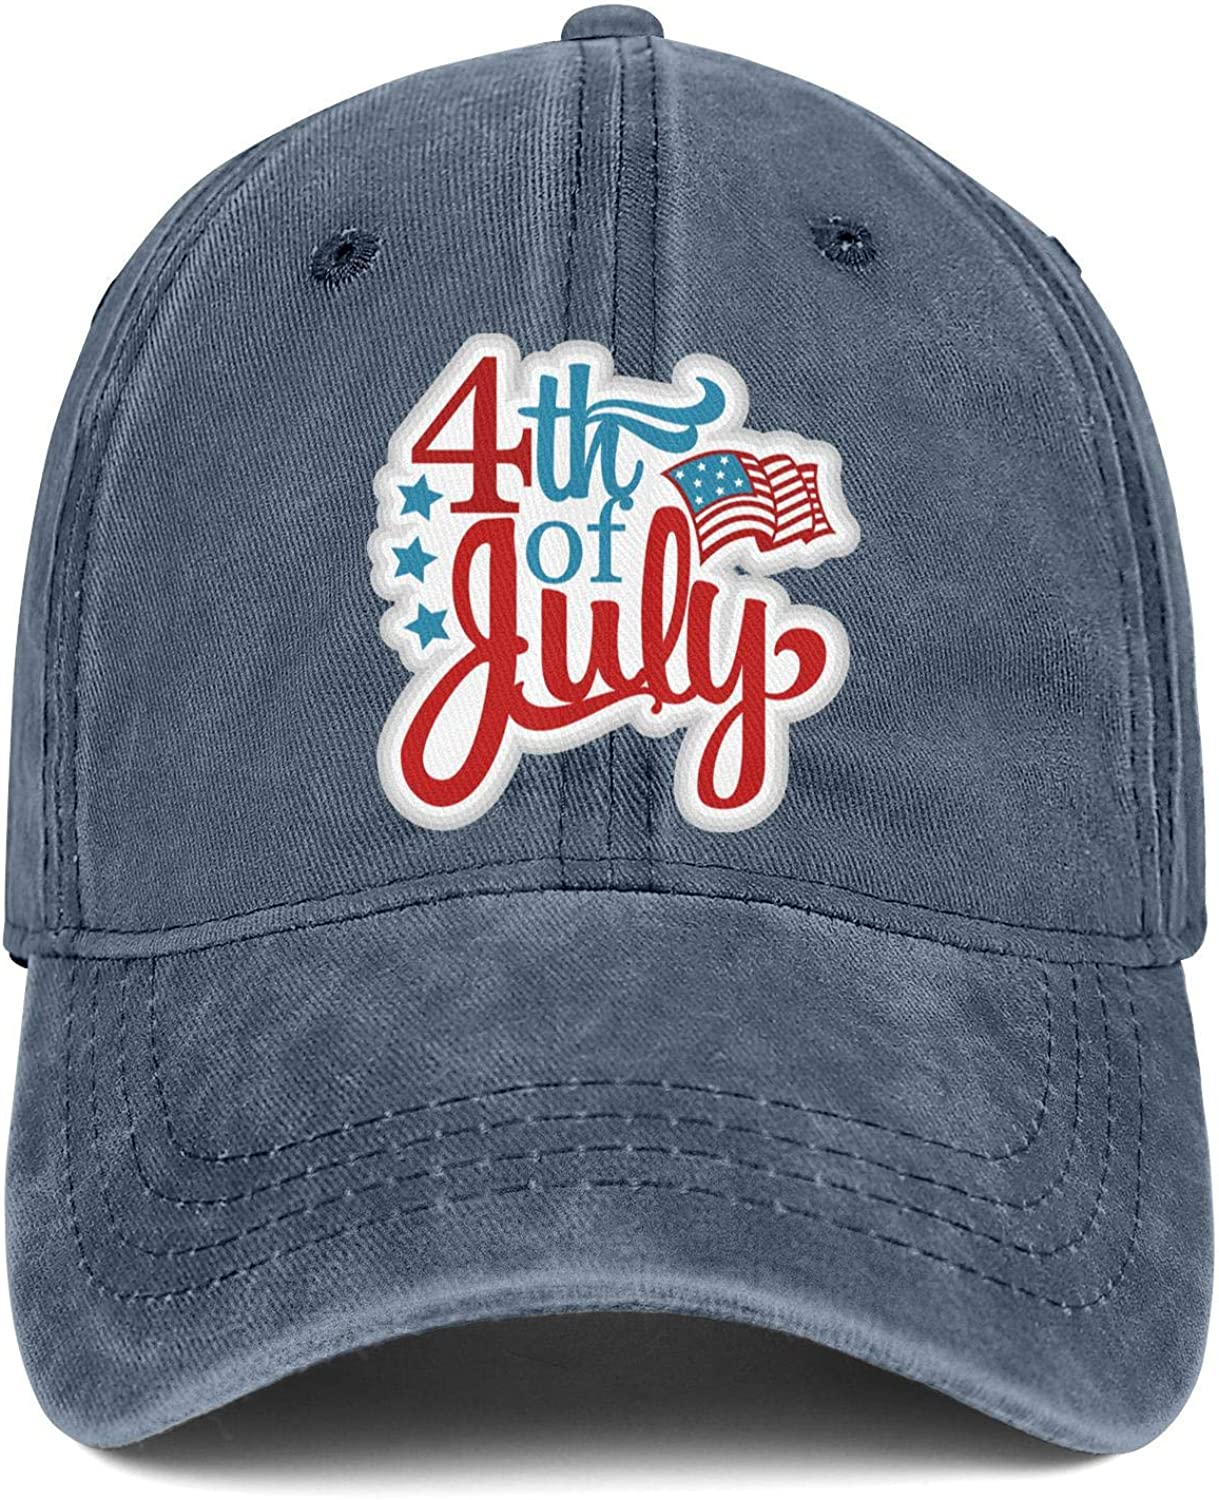 NNJA 4th of July American Flag Vector Unisex Baseball Curved Casual Structured Snapback Cap